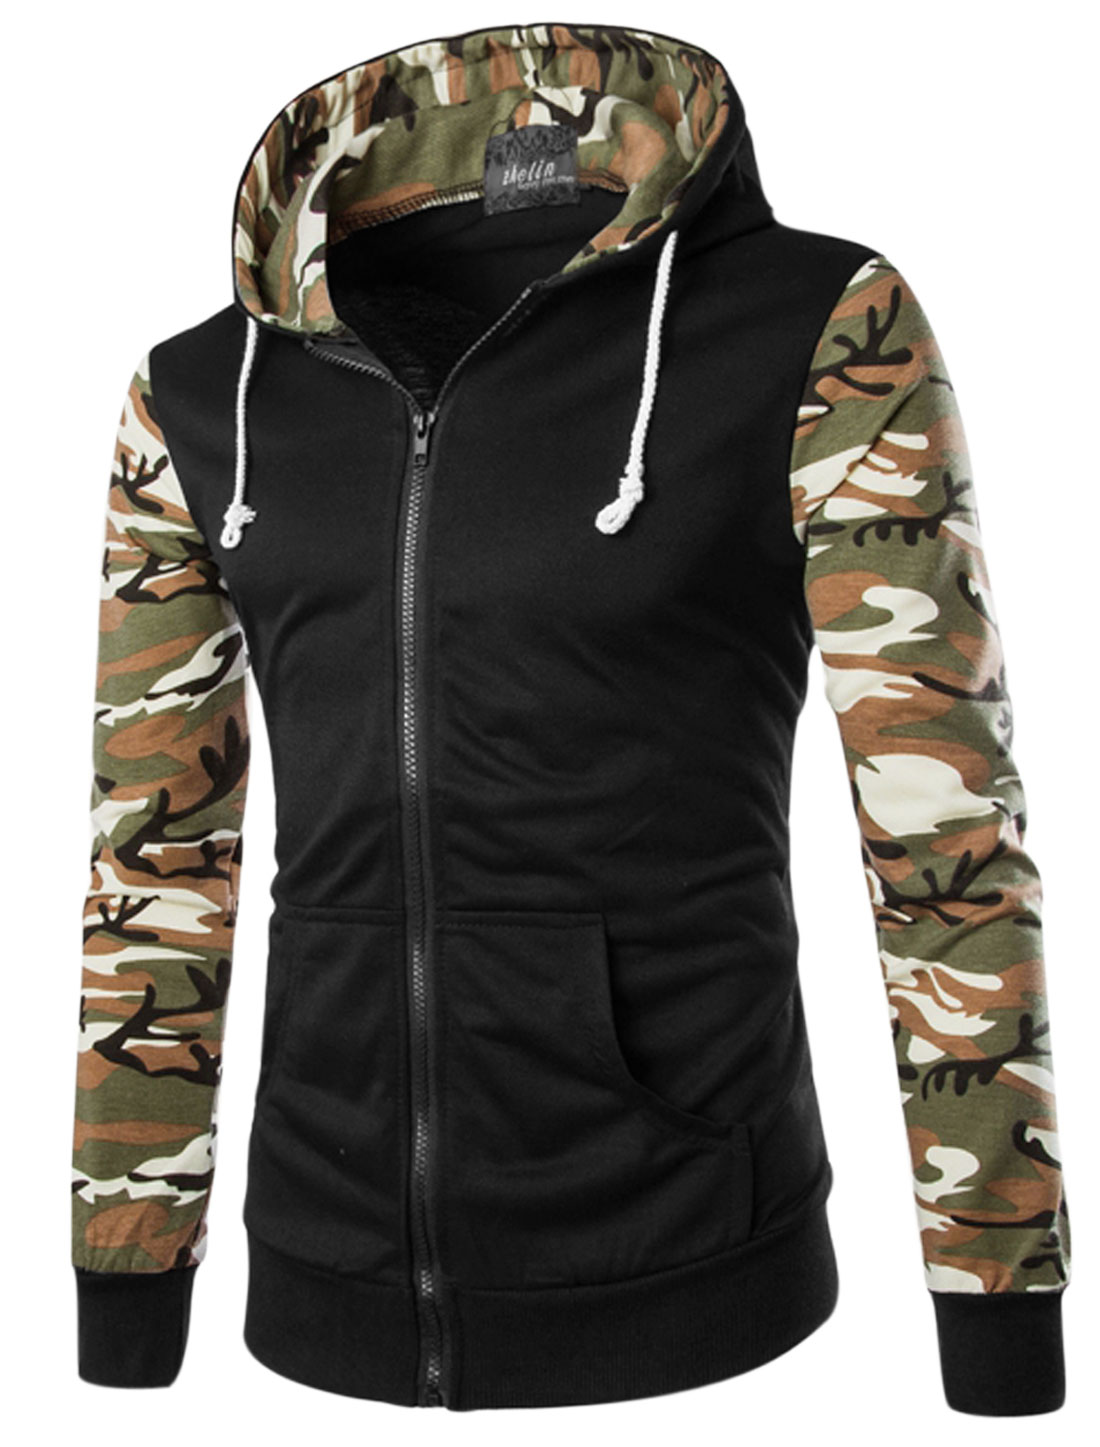 Men Zip Closure Front Pockets Camouflage Hooded Casual Jacket Black M